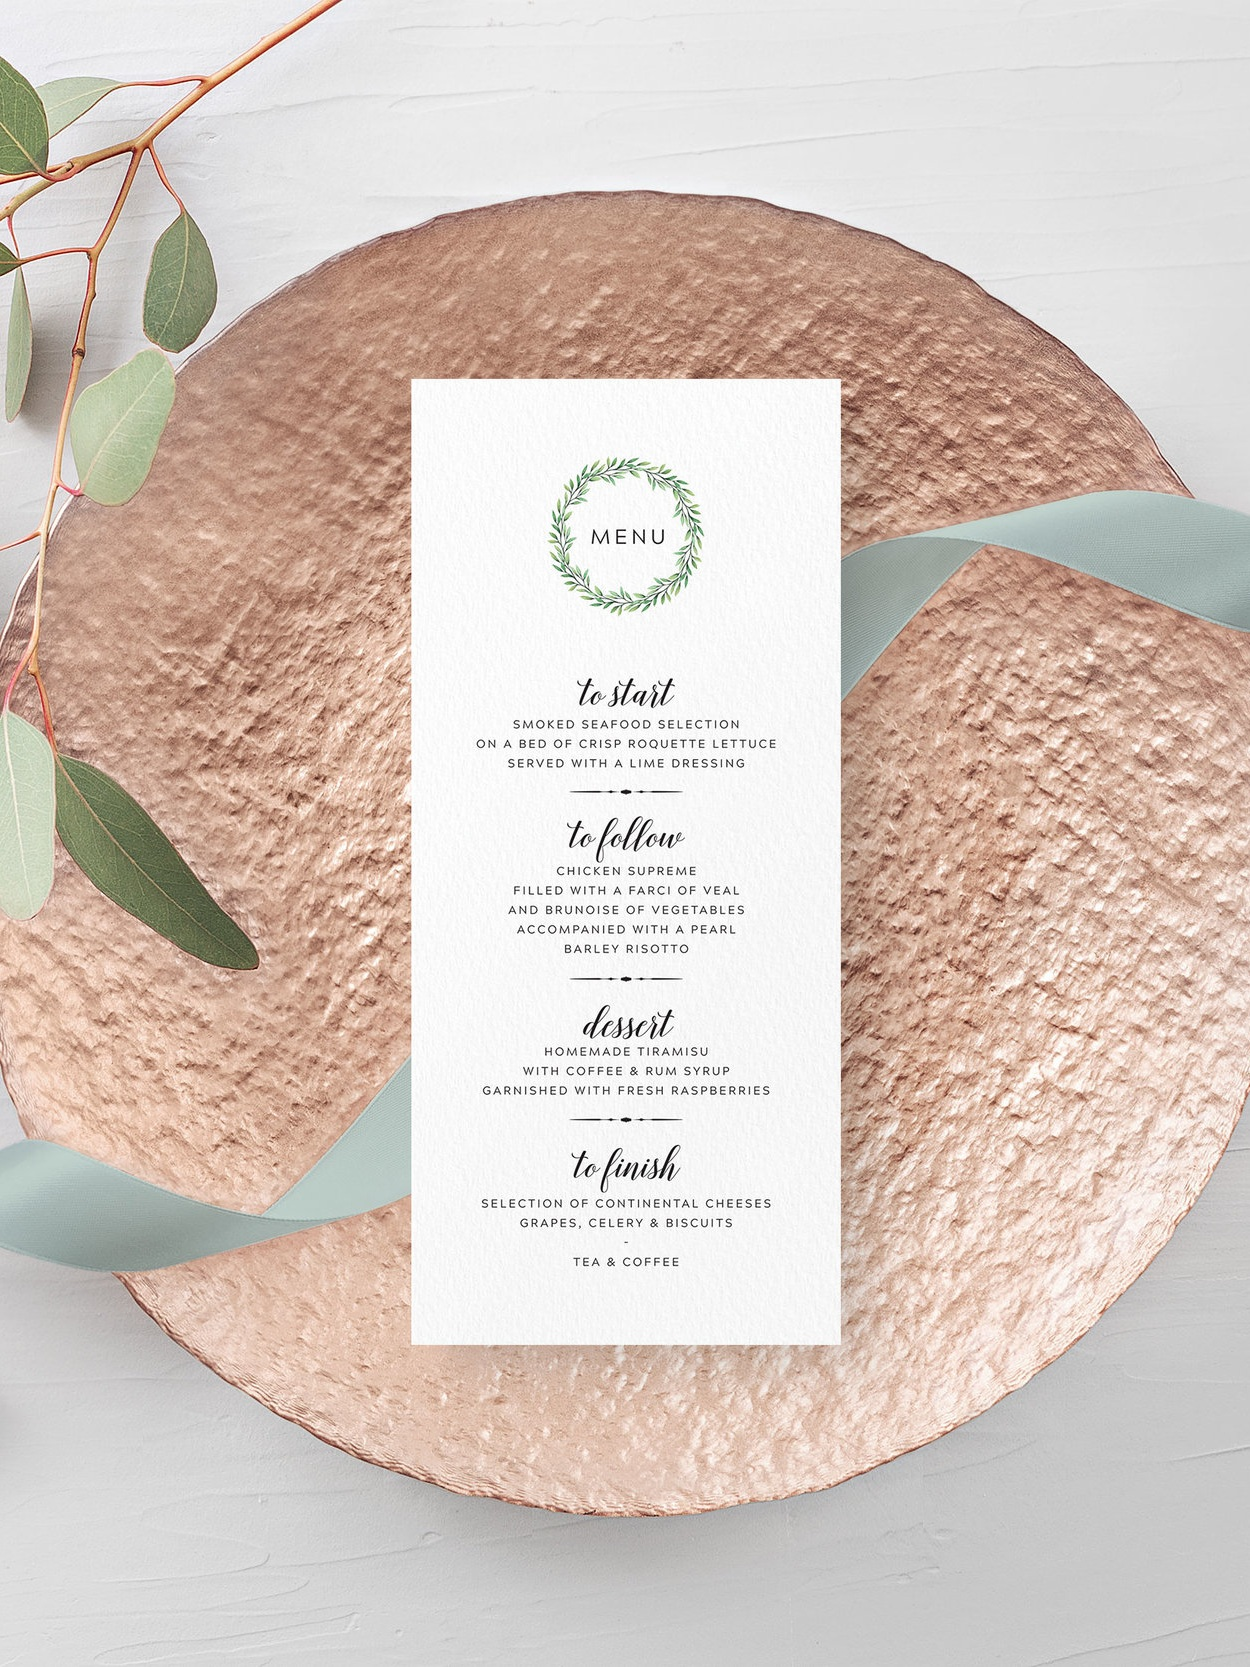 Mansion House - A delicate foliage wreath is used with contemporary typography for this lovely menu card design.Our menu cards can be printed single- or double-sided, and can double as place cards by having them personalised with a guest name too.Pricing£1.15 - standard, single-sided / £1.65 - personalised, single-sided£1.40 - standard, double-sided / £1.90 - personalised, double-sided